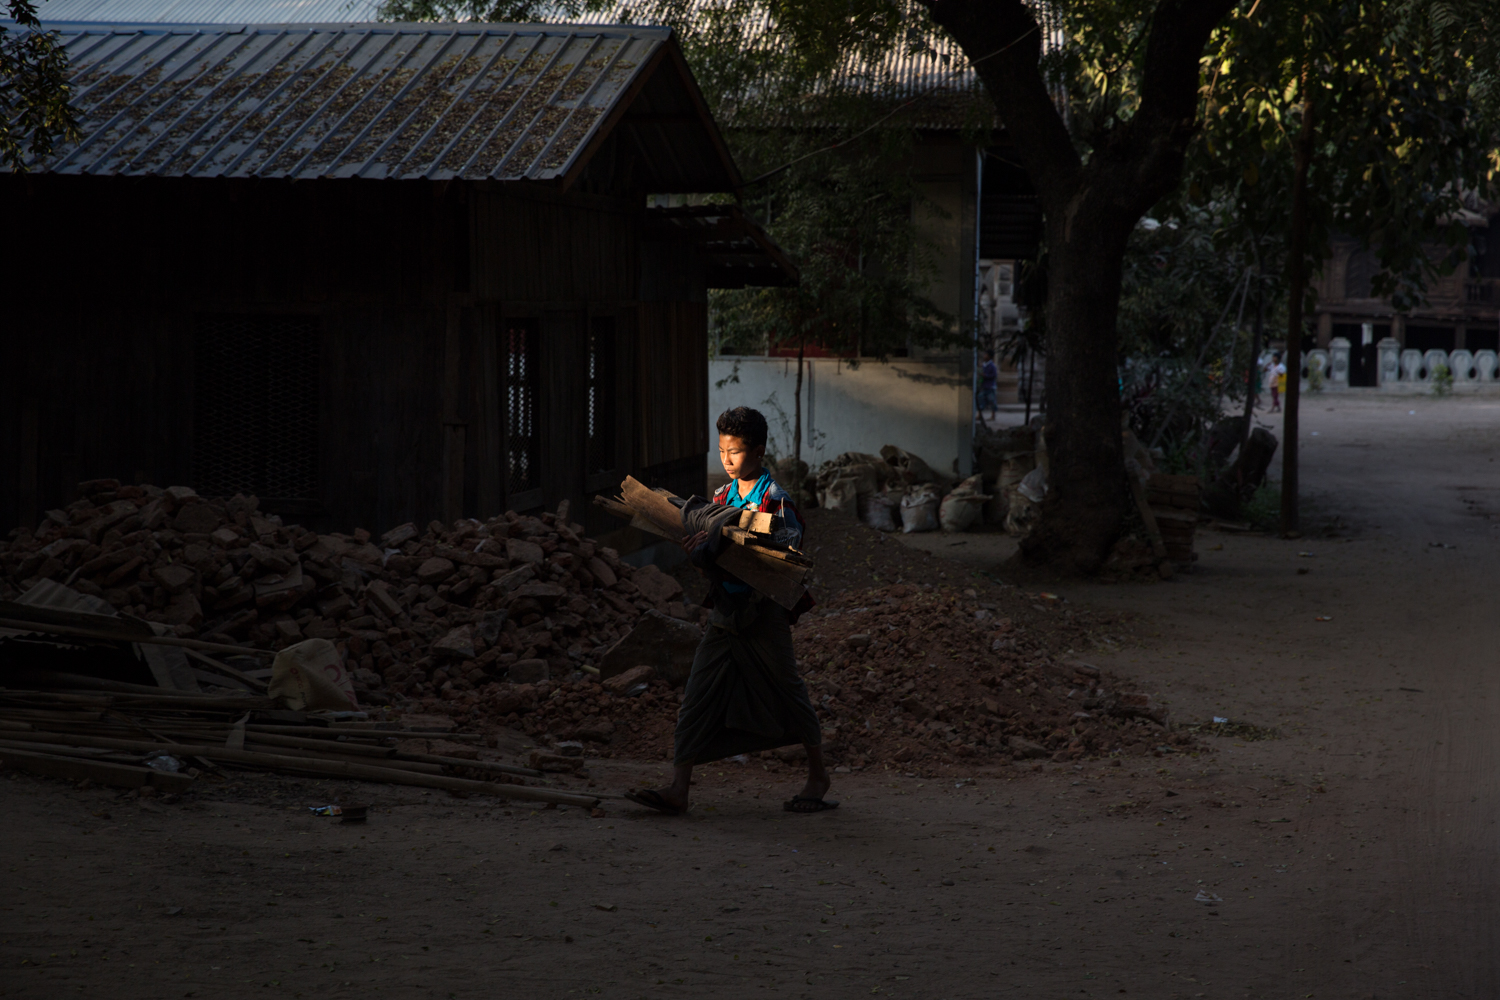 A boy carries firewood through a lonely sliver of light back to his home in Bagan, Myanmar.